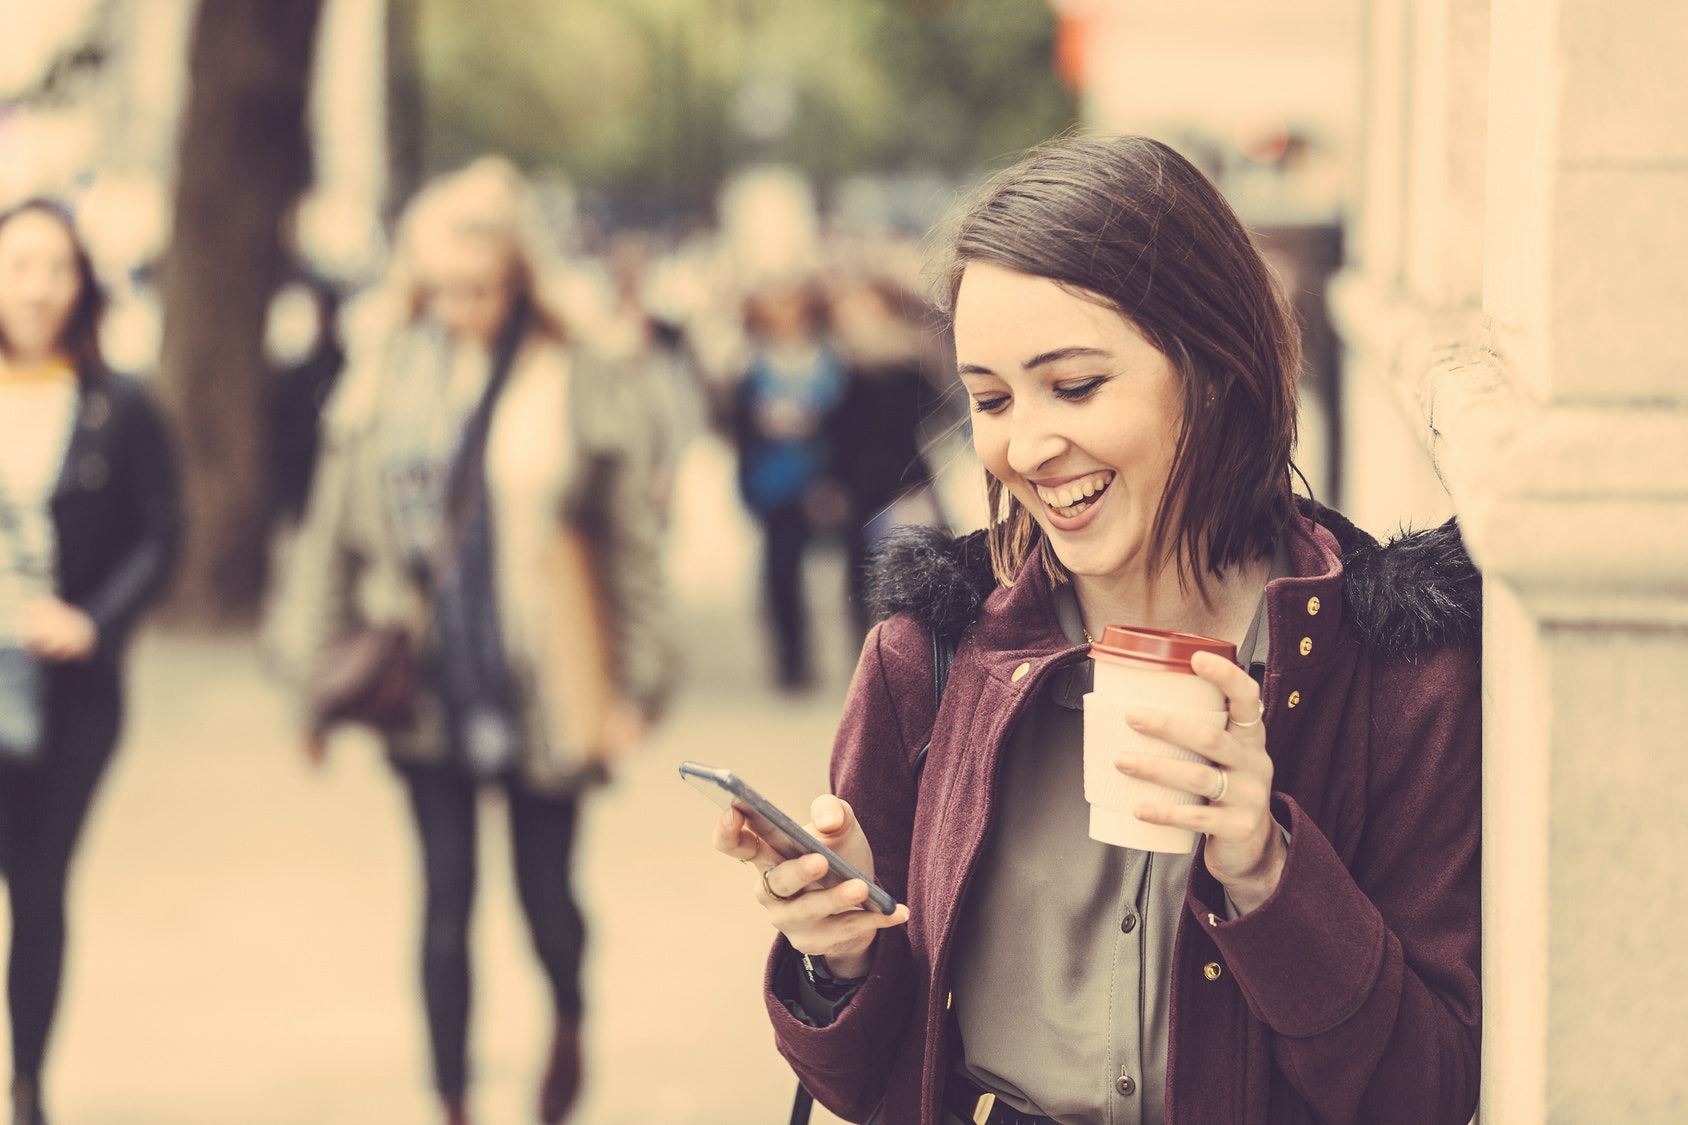 Best Dating App Because of Young Professionals